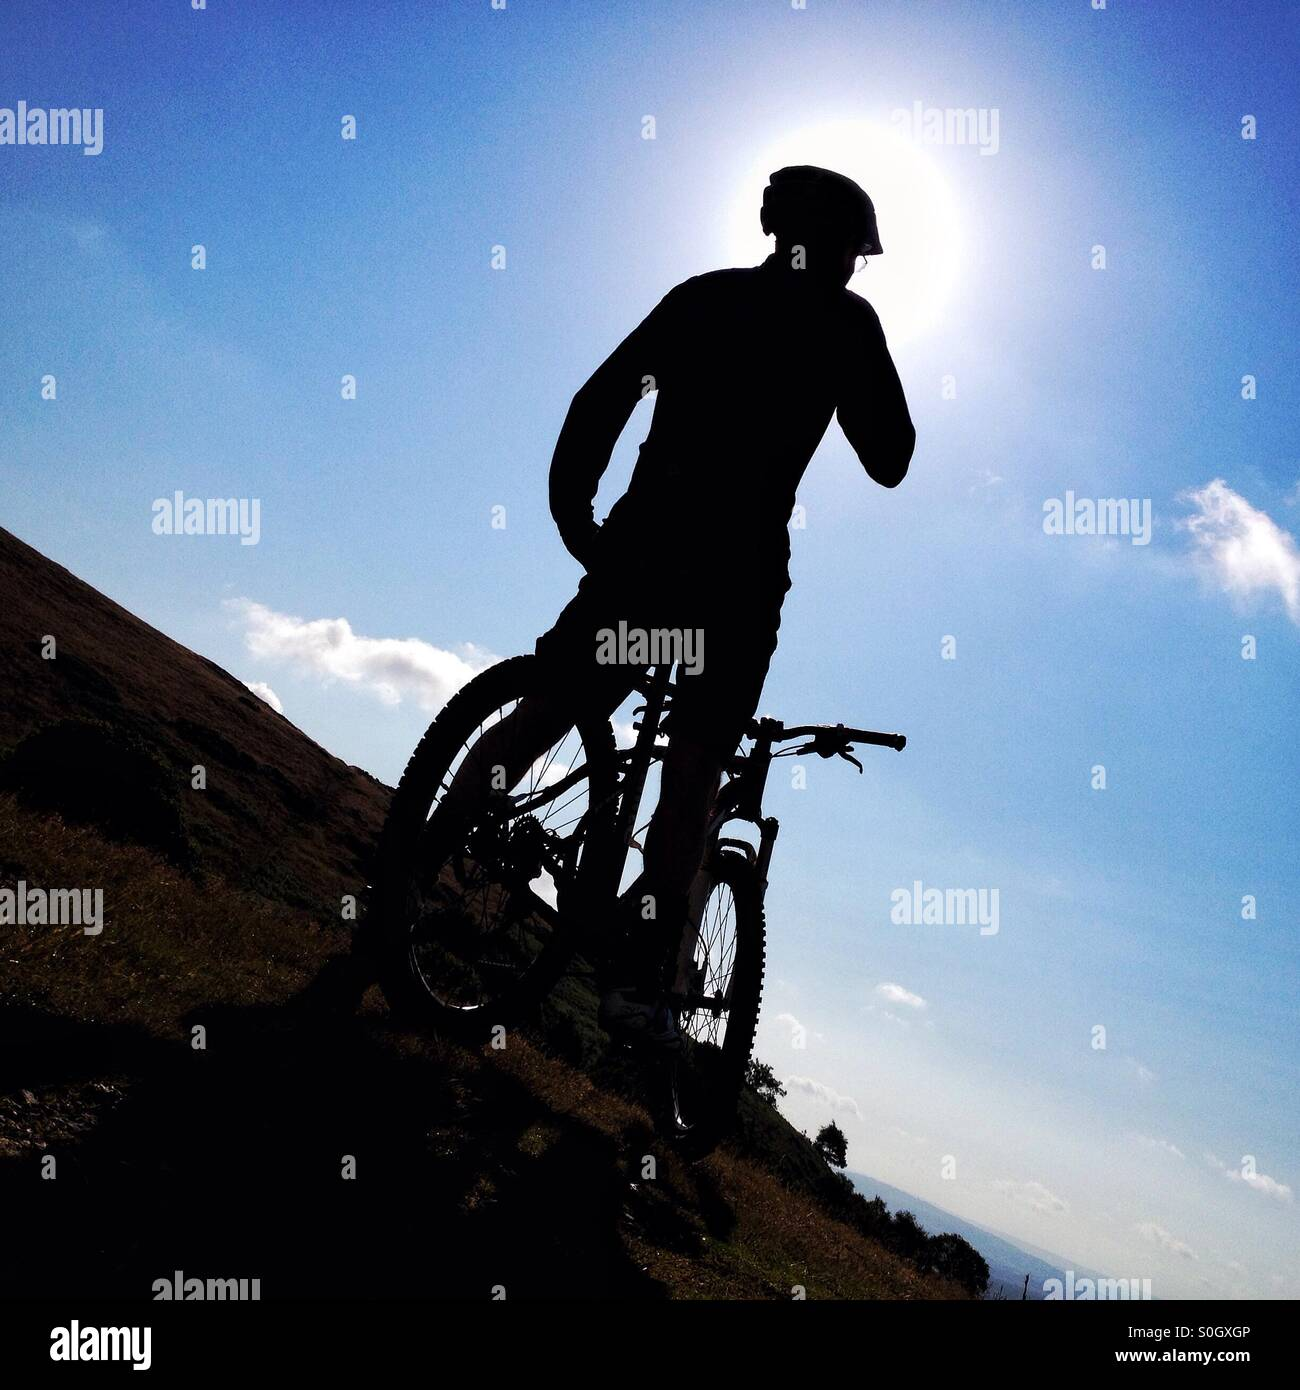 Silhouette of man with mountain bike - Stock Image